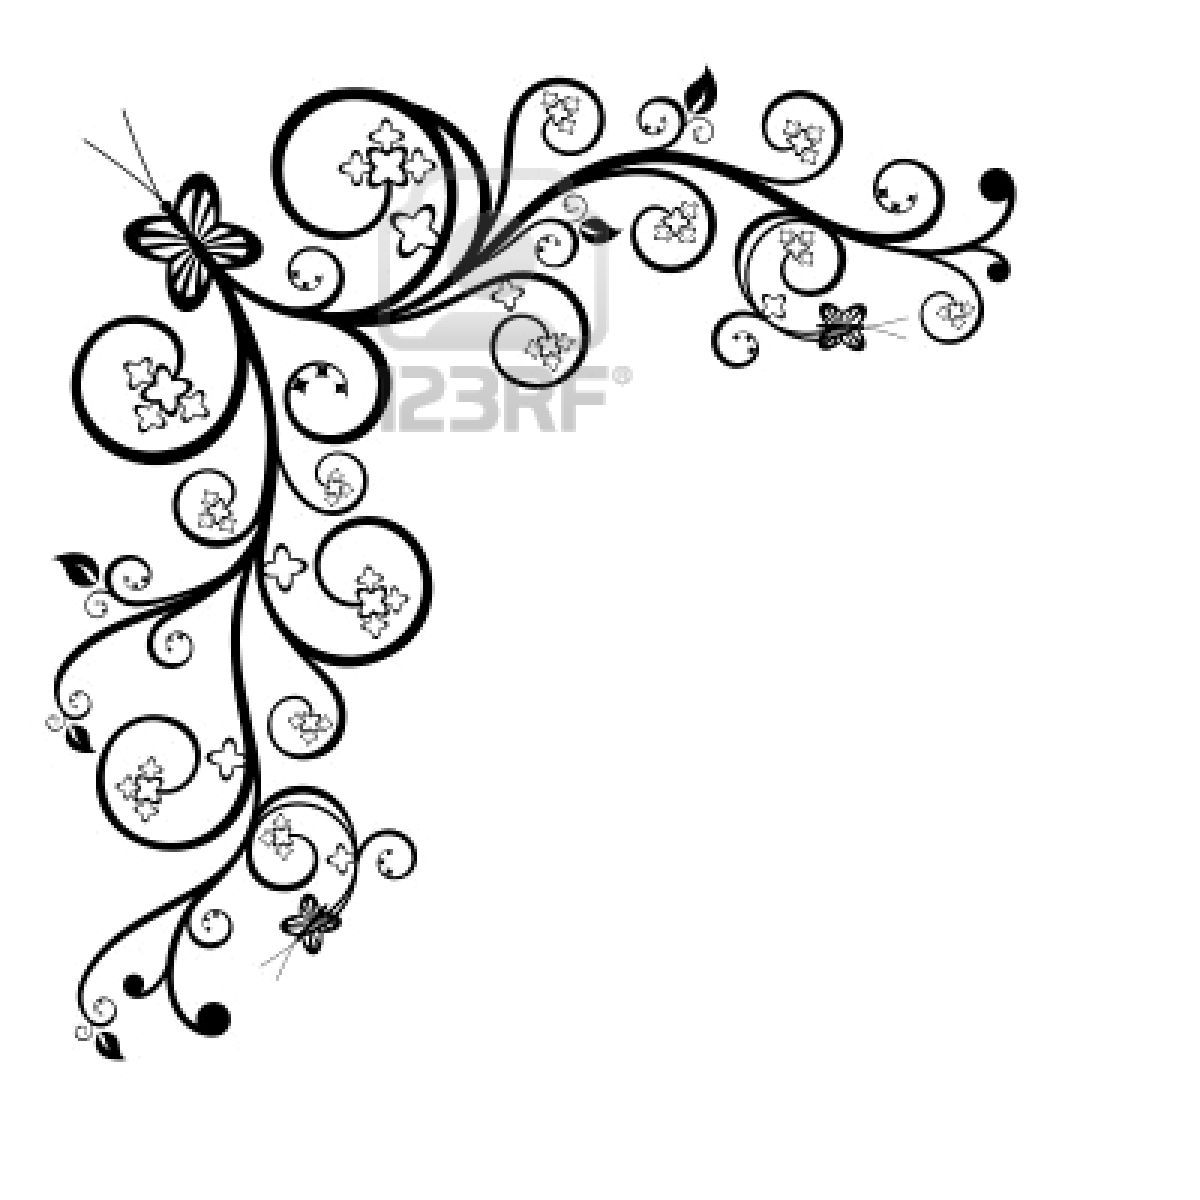 Cool black and white drawings frame clip art black and for Cool designs in black and white